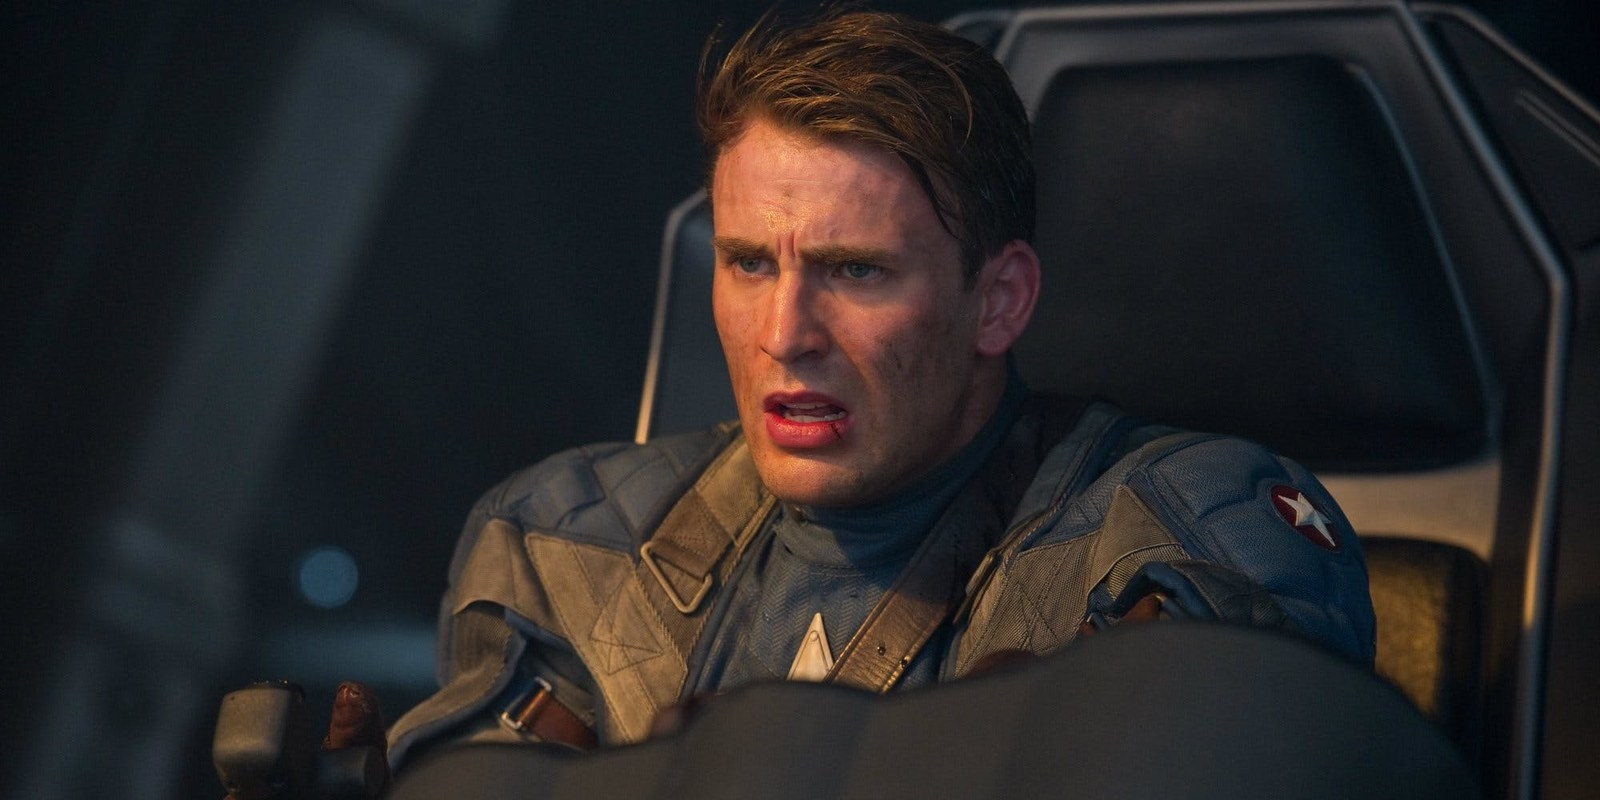 I Just Realized Something Gross About Captain America After